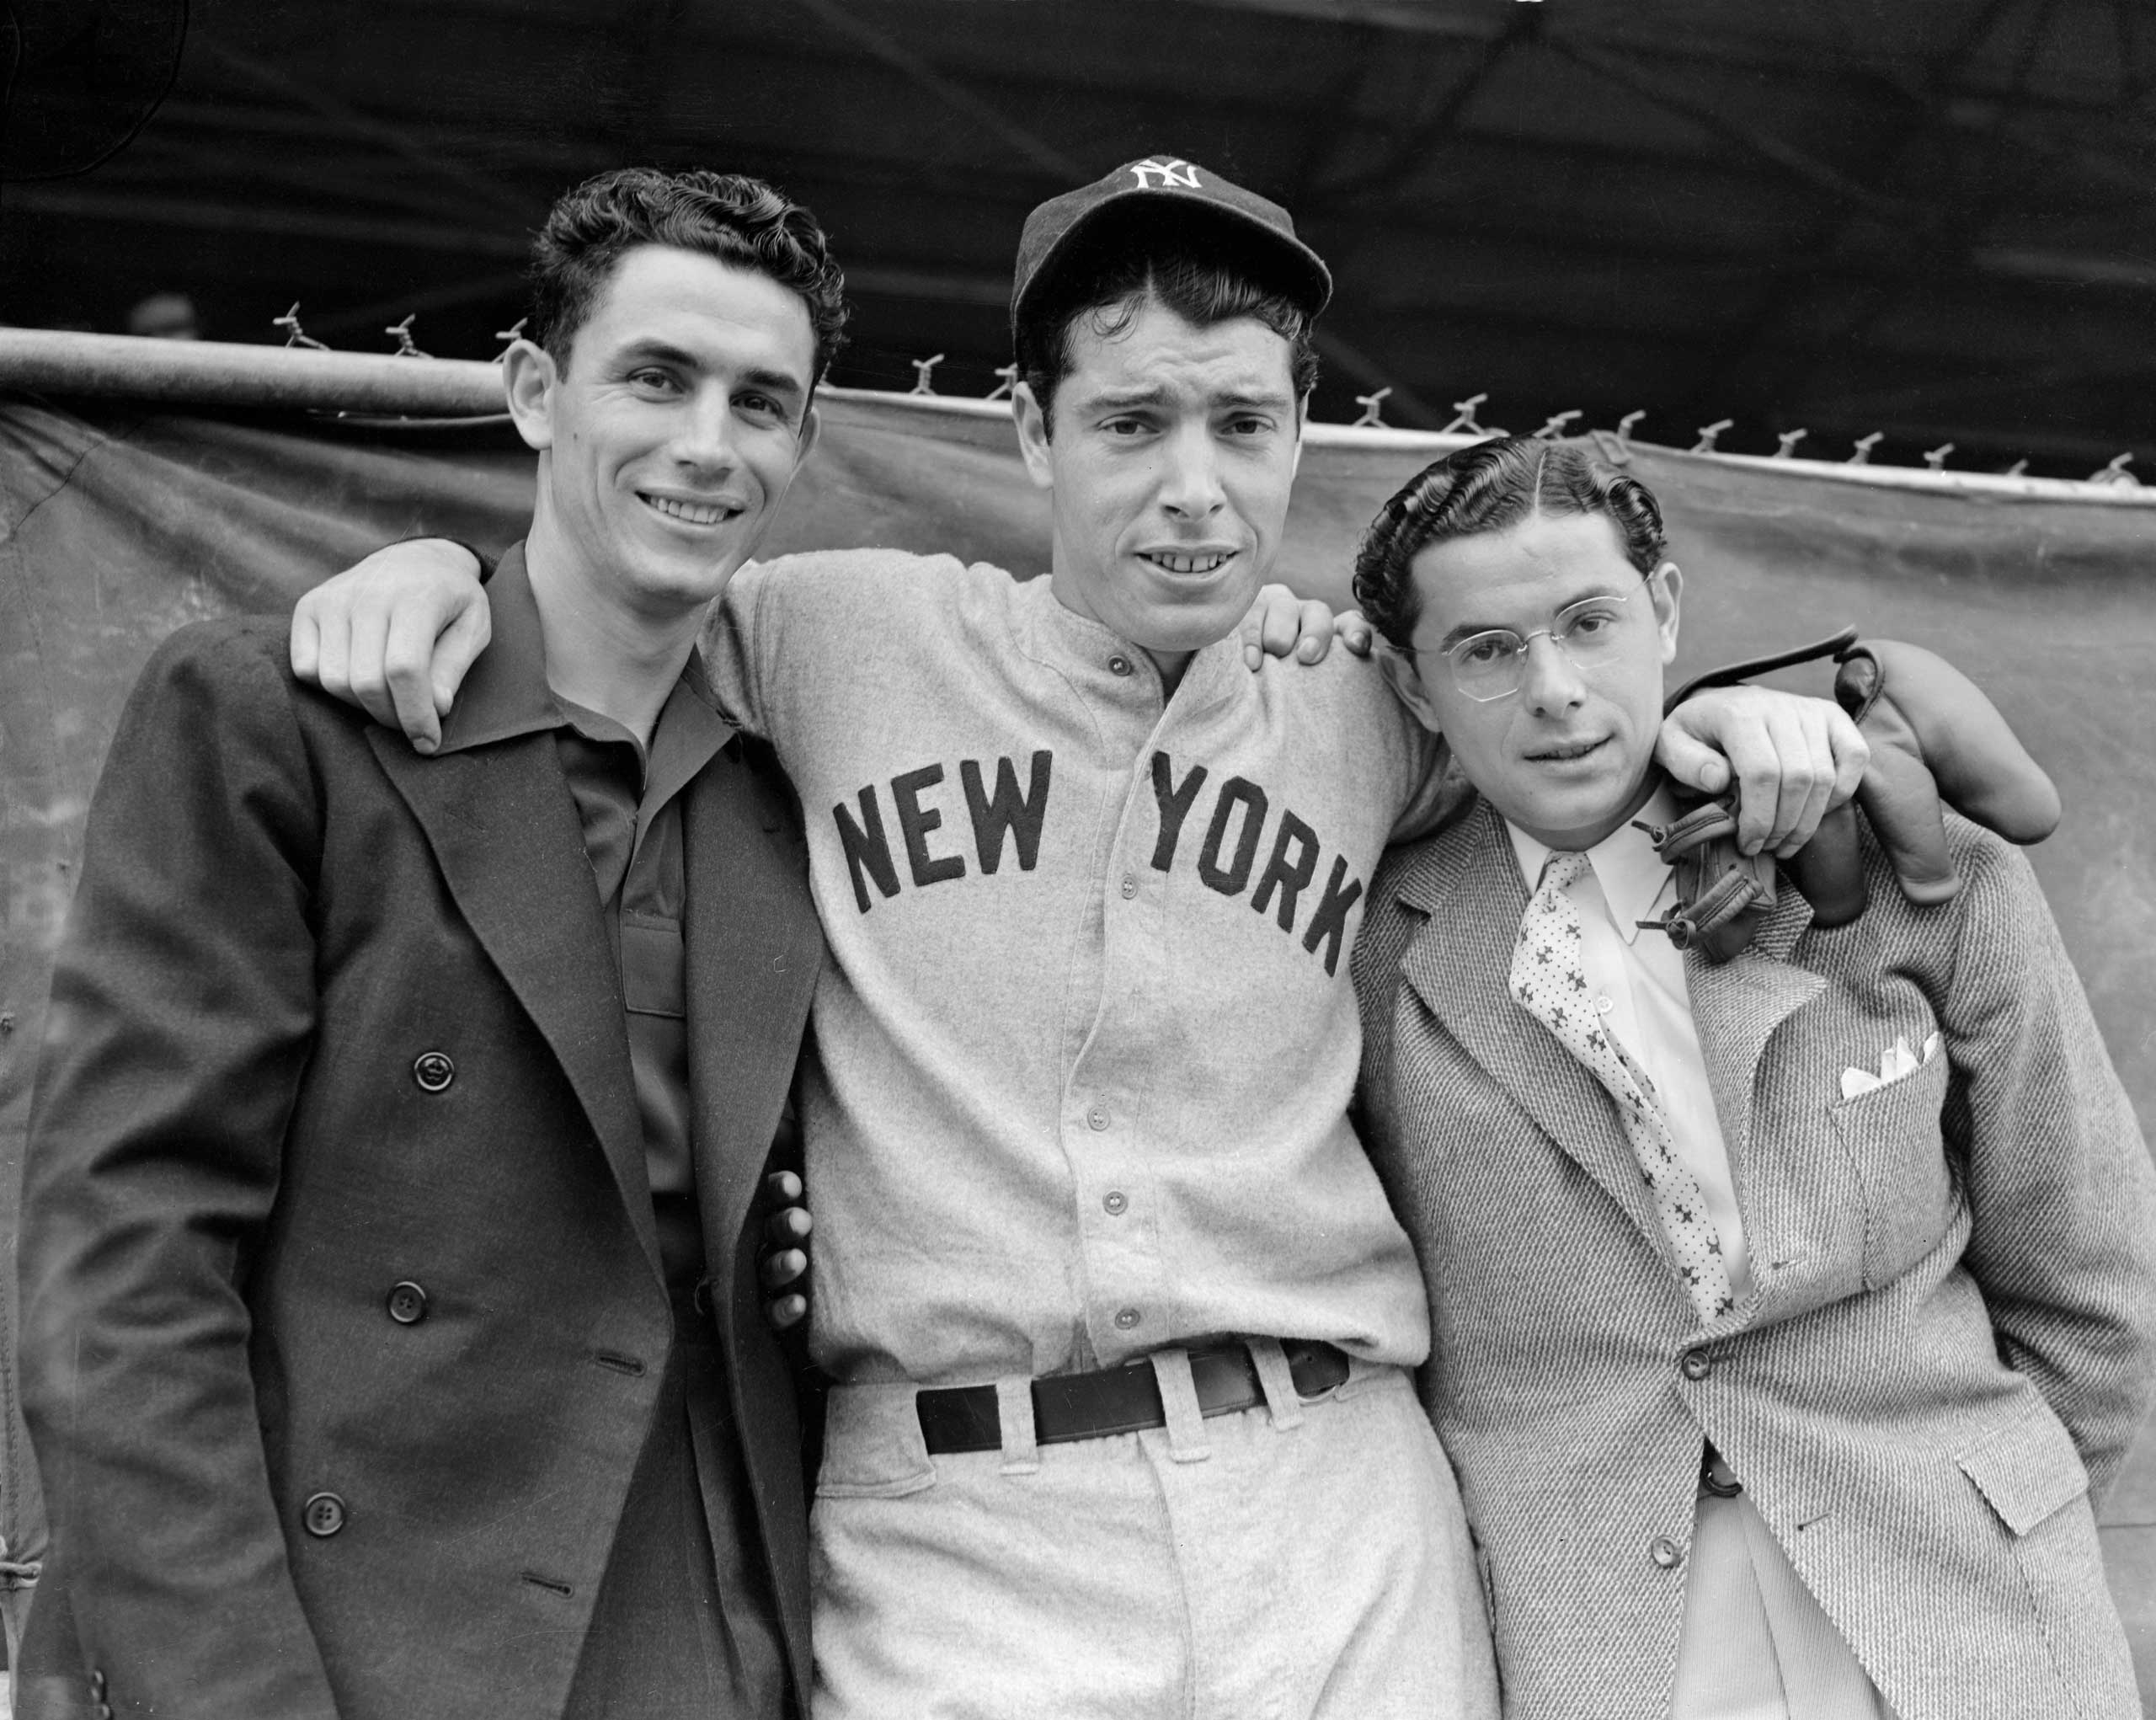 THE DIMAGGIOS: Joltin' Joe was one of nine children. His older brother Vince, left, and younger brother Dom also made it to the major leagues.